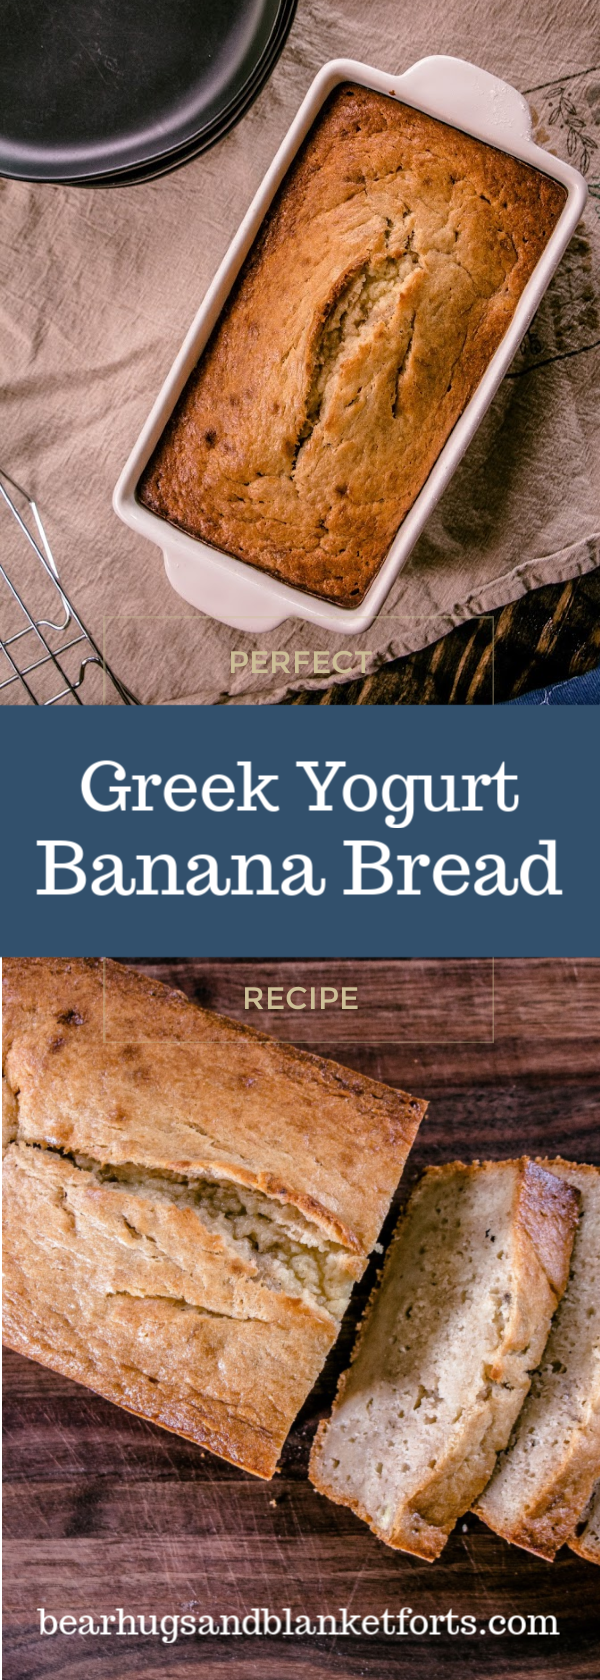 Are You Looking For The Best Banana Bread Recipe Look No Further Than This Super Moist Flavor Yogurt Banana Bread Greek Yogurt Banana Bread Best Banana Bread